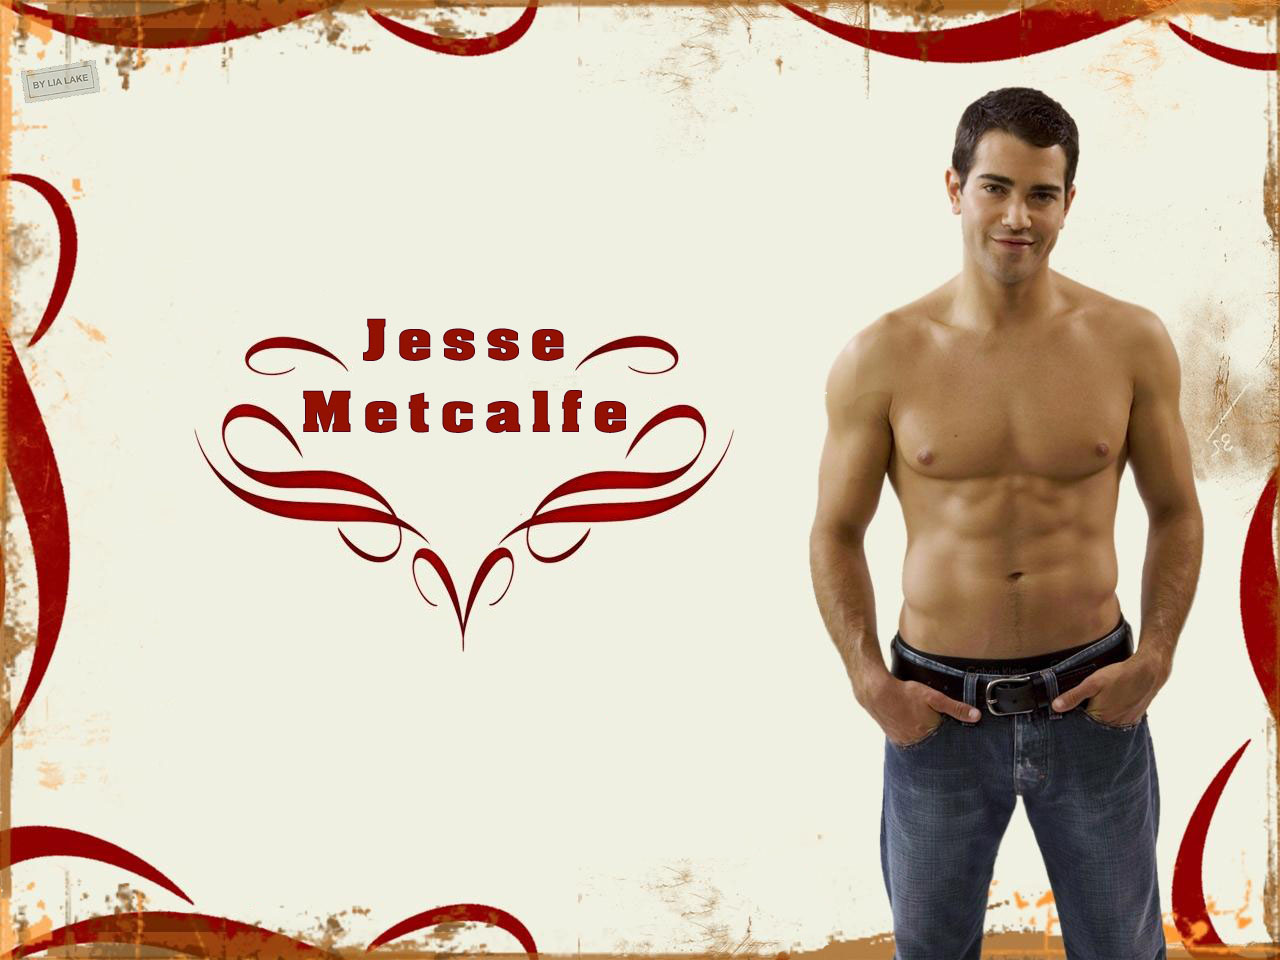 jesse metcalfe muscle